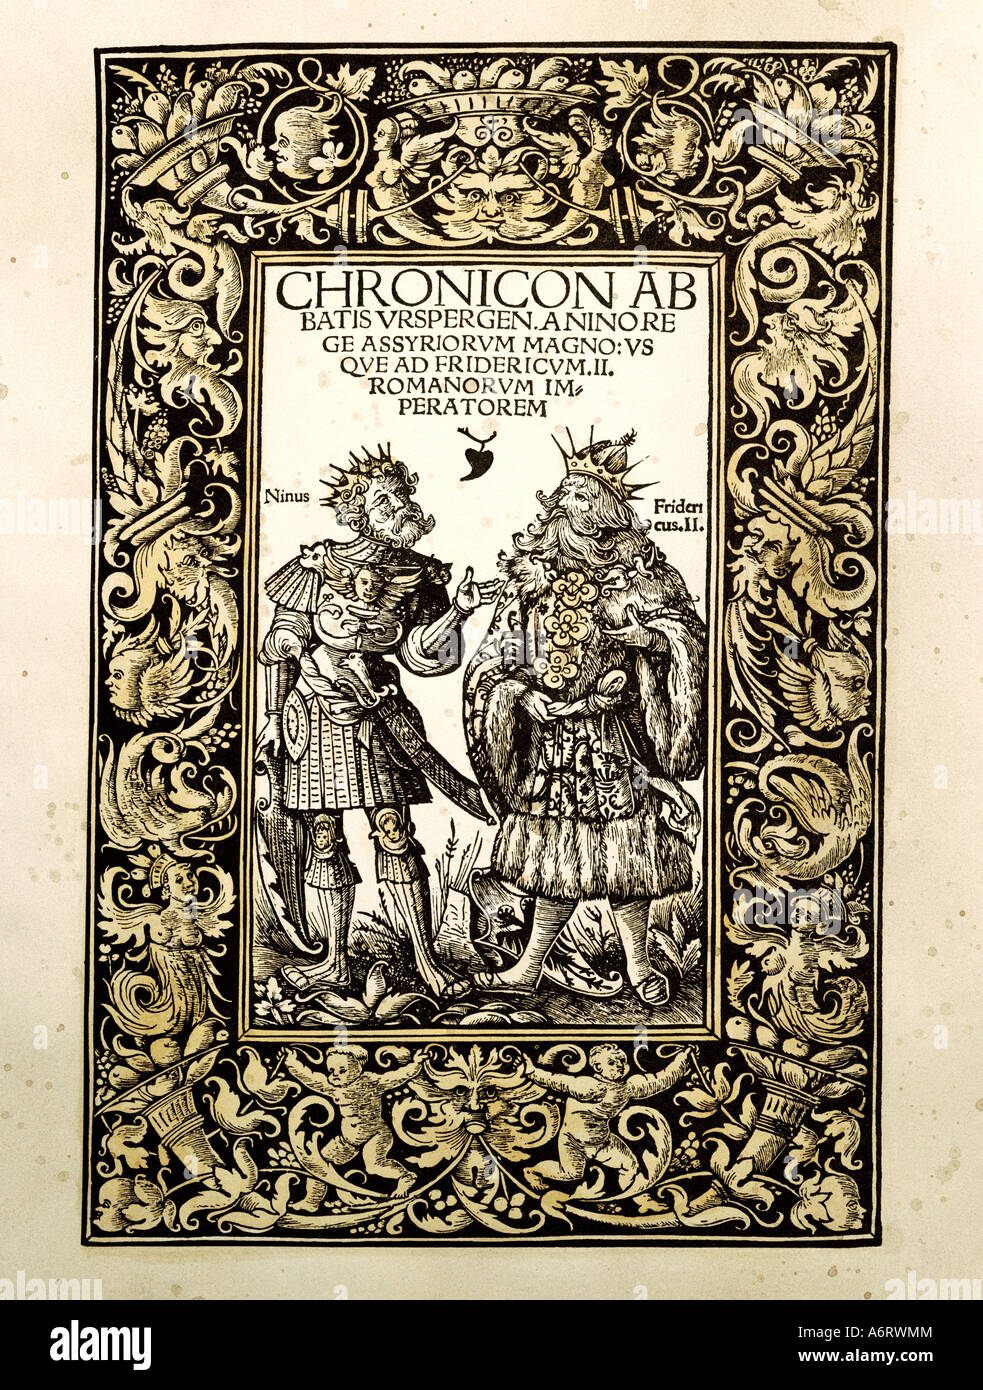 science, history, chronicle of abbot Ursberger, Augsburg, 1515, printed by bei Johann Miller, title, woodcut by - Stock Image